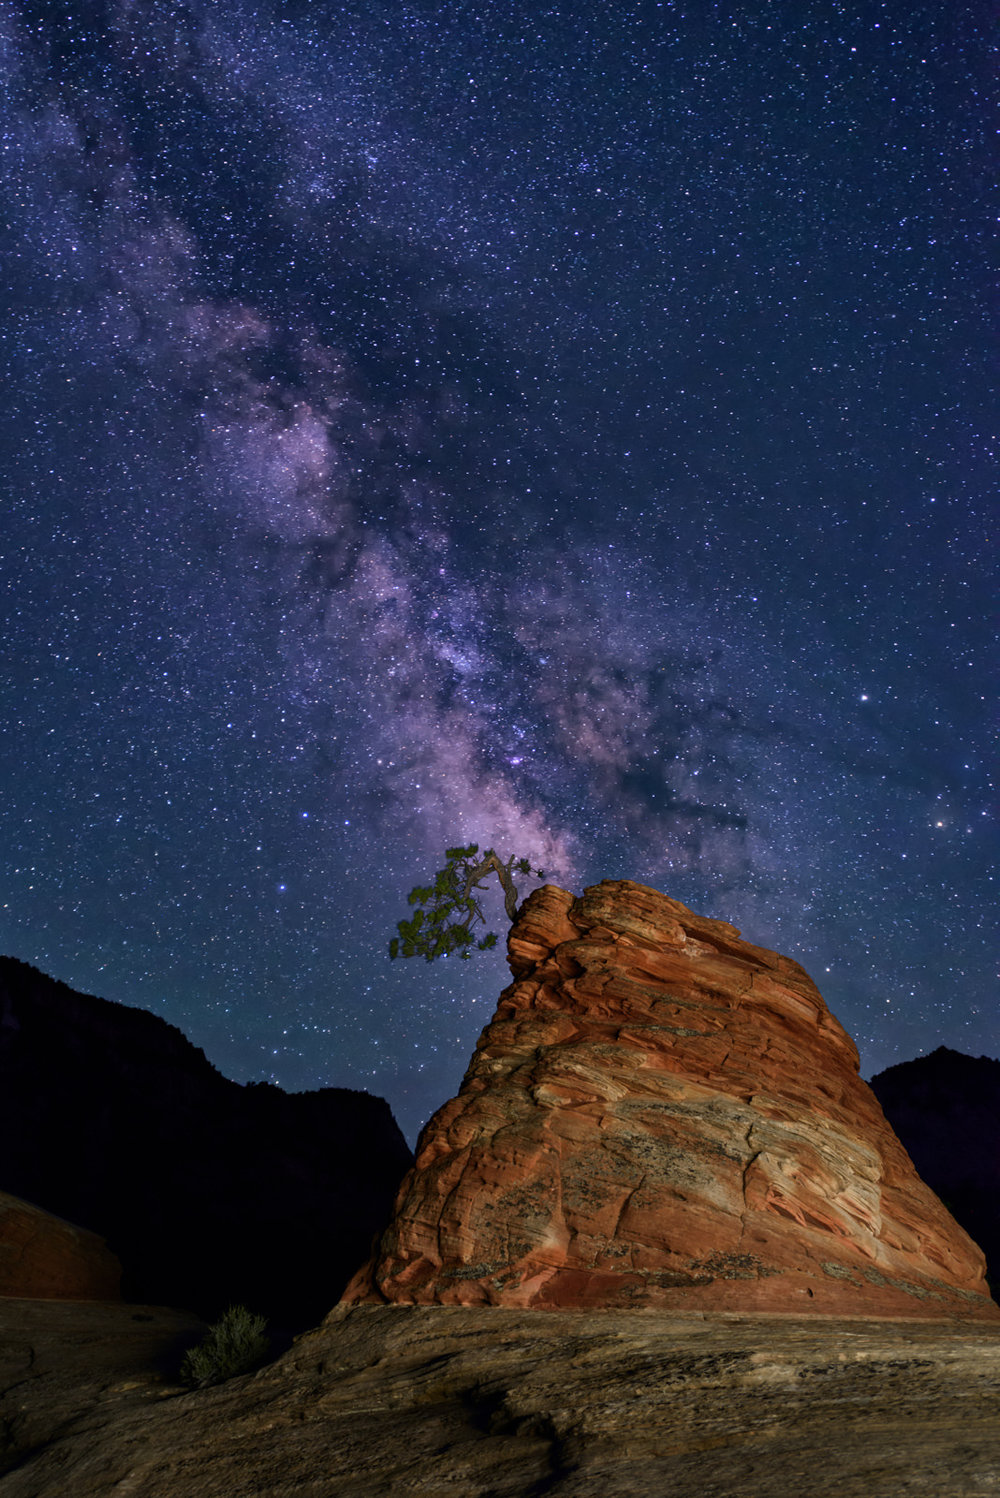 Rocks and Stars and the Little Tree that Could